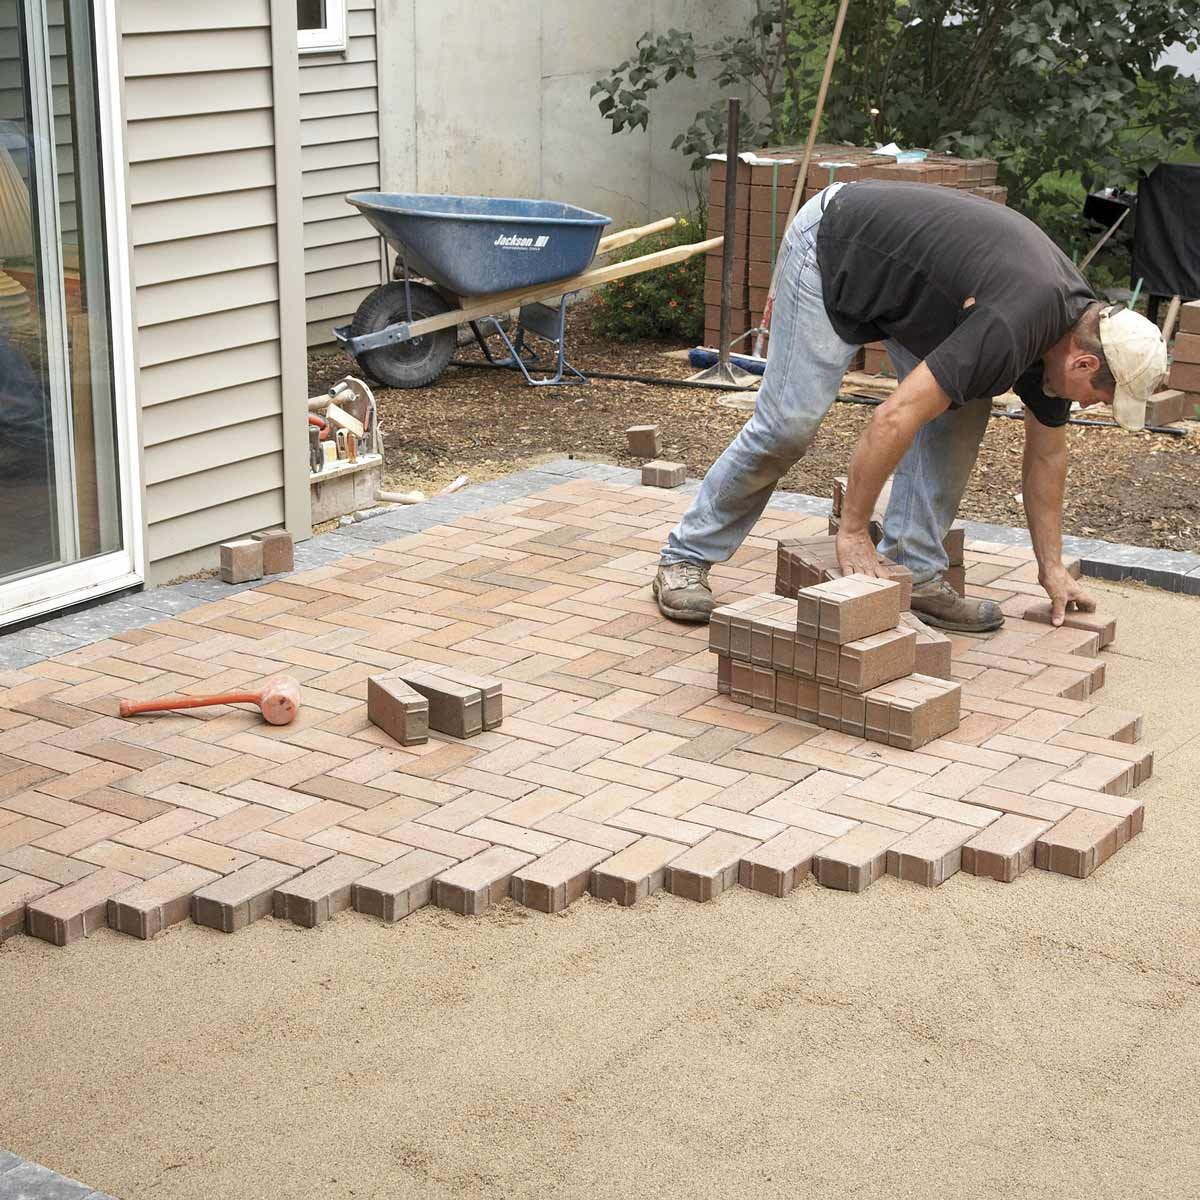 Pavers-Rowlett TX Professional Landscapers & Outdoor Living Designs-We offer Landscape Design, Outdoor Patios & Pergolas, Outdoor Living Spaces, Stonescapes, Residential & Commercial Landscaping, Irrigation Installation & Repairs, Drainage Systems, Landscape Lighting, Outdoor Living Spaces, Tree Service, Lawn Service, and more.